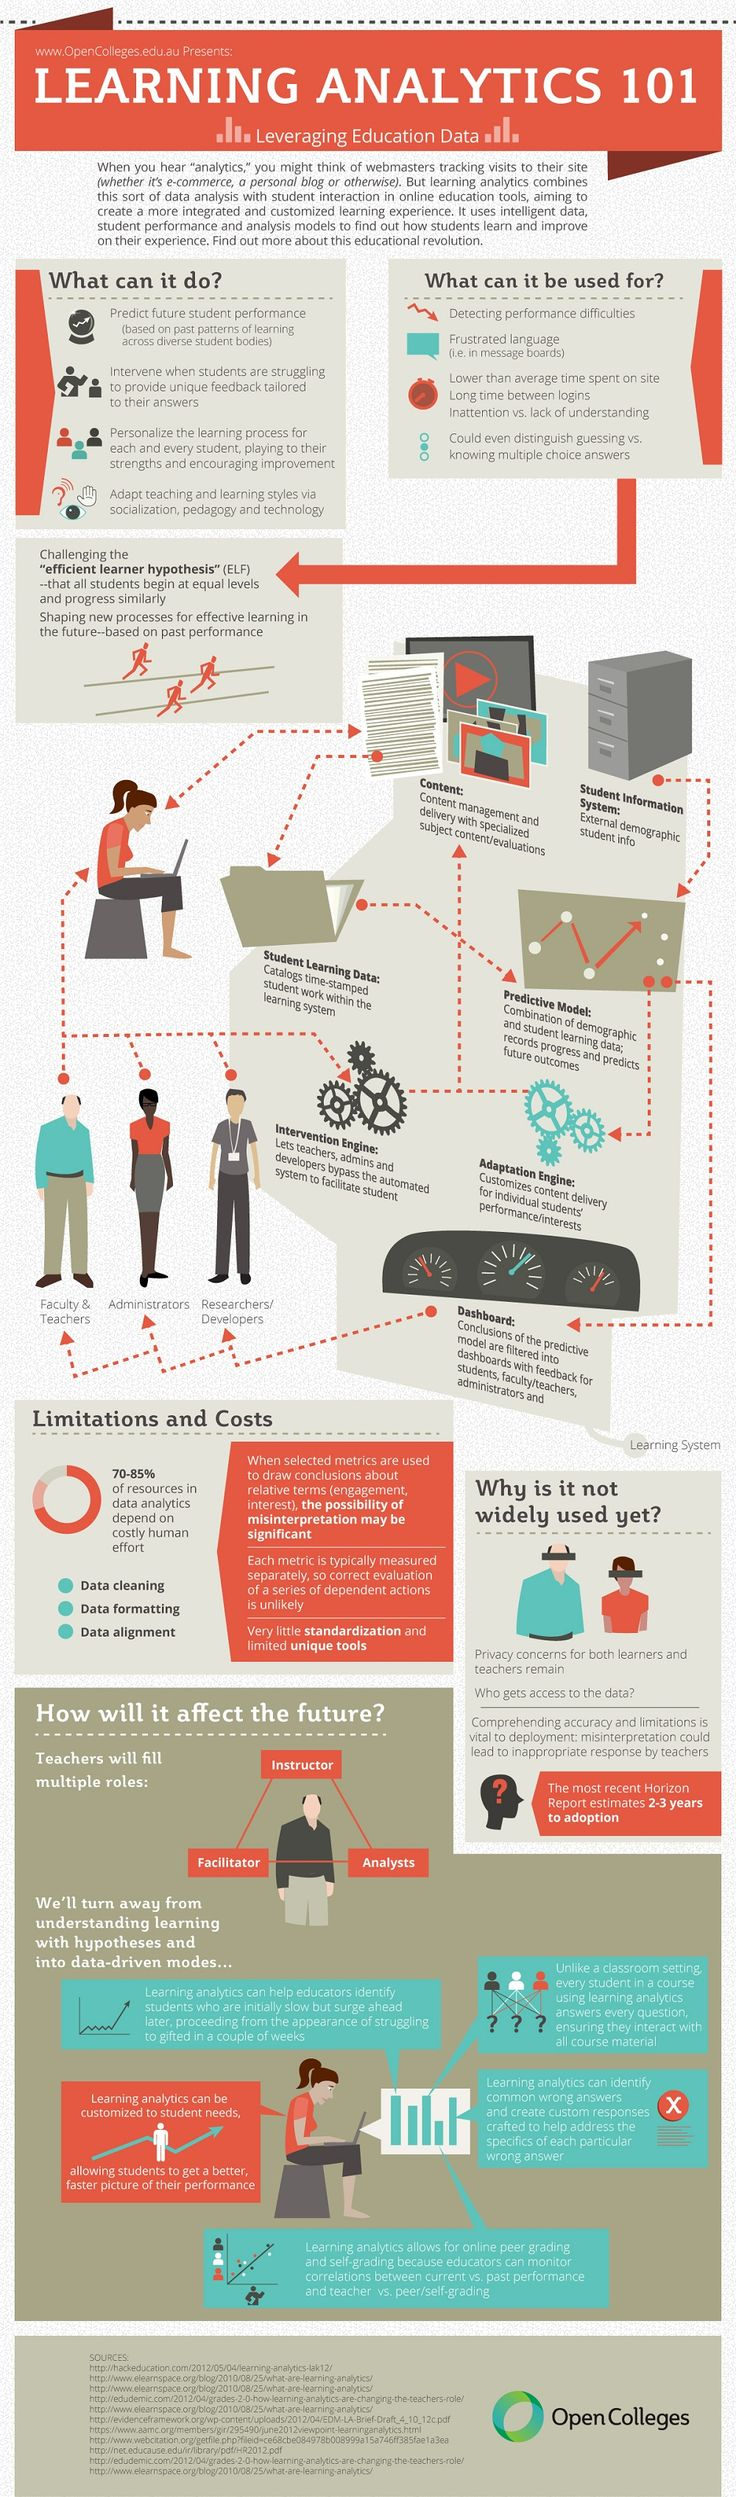 Utilidad de las Learning Analytics #infografia #infographic #education